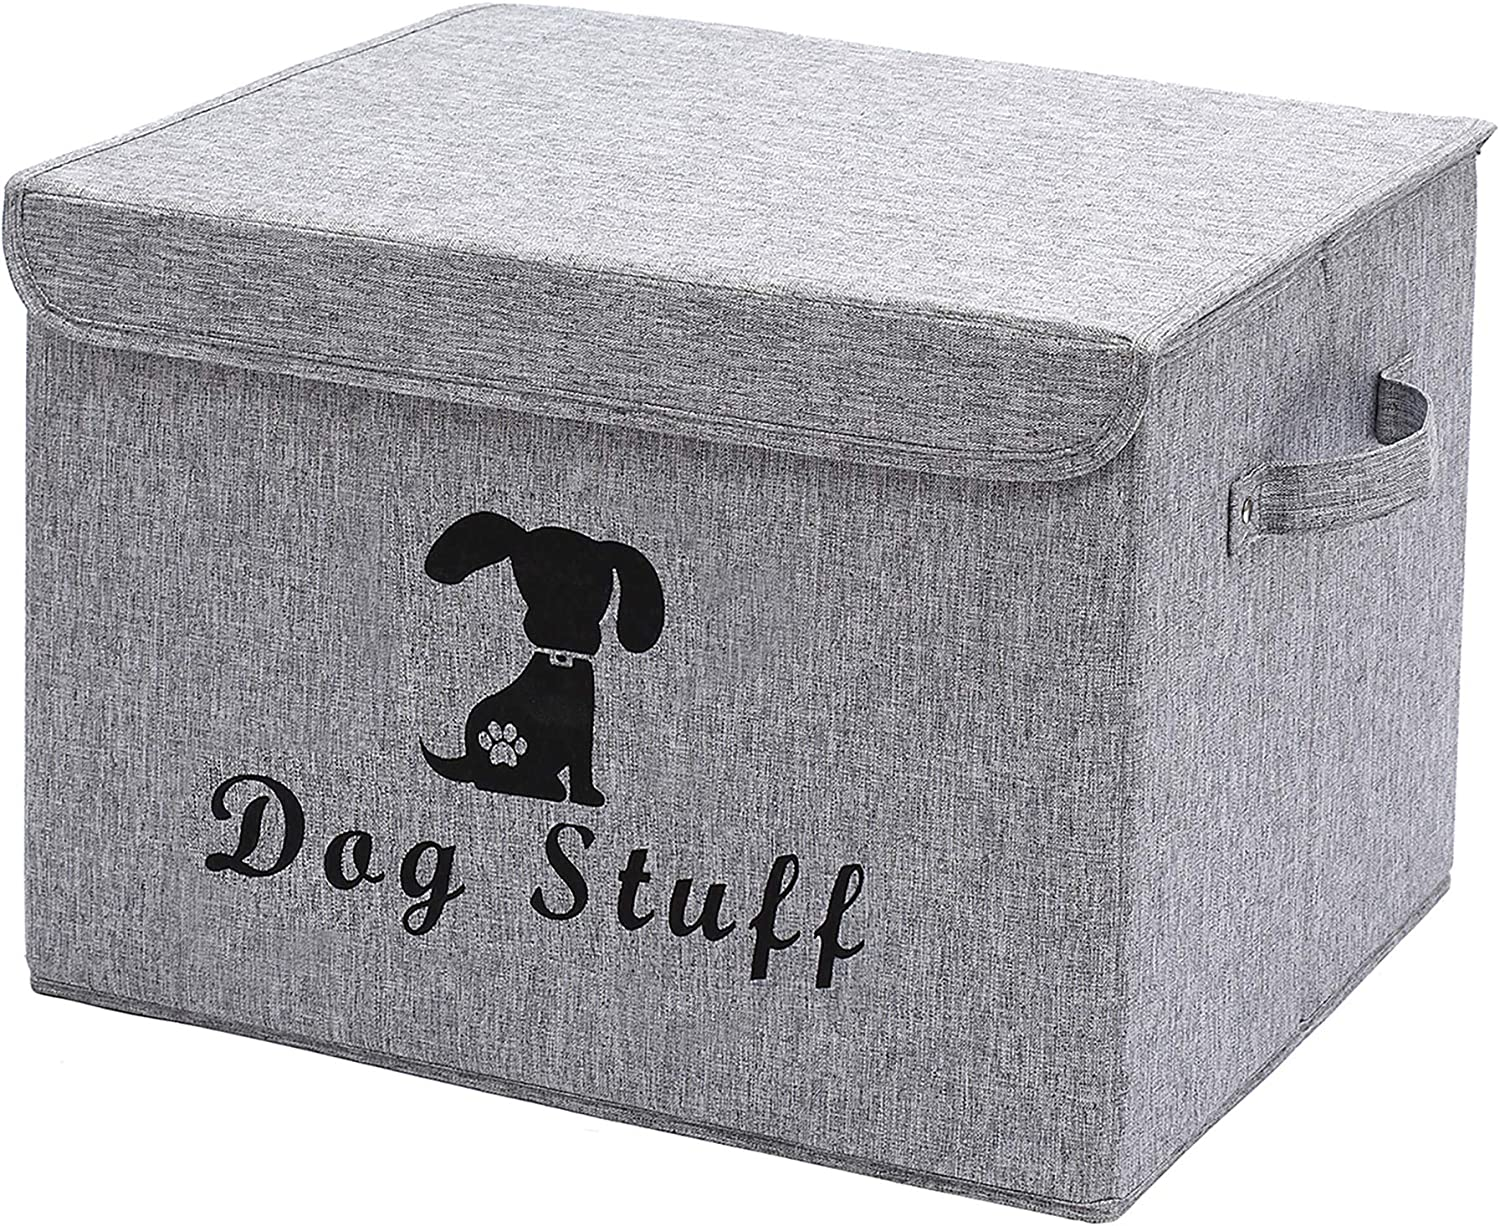 Geyecete Linen Dog Storage Basket Bin Chest Organizer with Lid and Handles - Perfect for Organizing Dog Toys, Dog Clothing, Storage Trunk